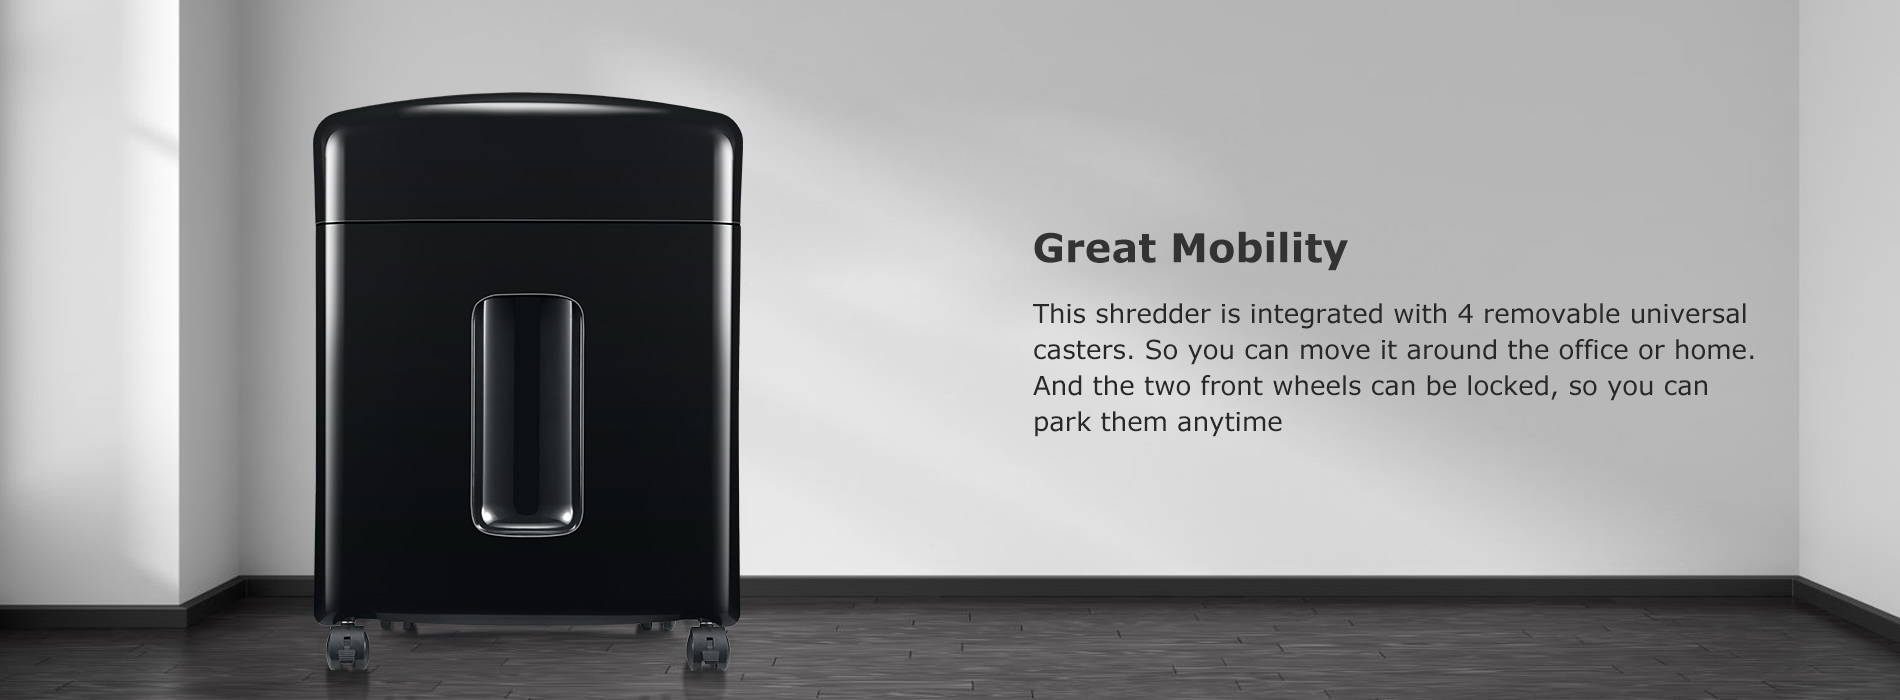 Great Mobility This shredder is integrated with 4 removable universal casters. So you can move it around the office or home. And the two front wheels can be locked, so you can park them anytime